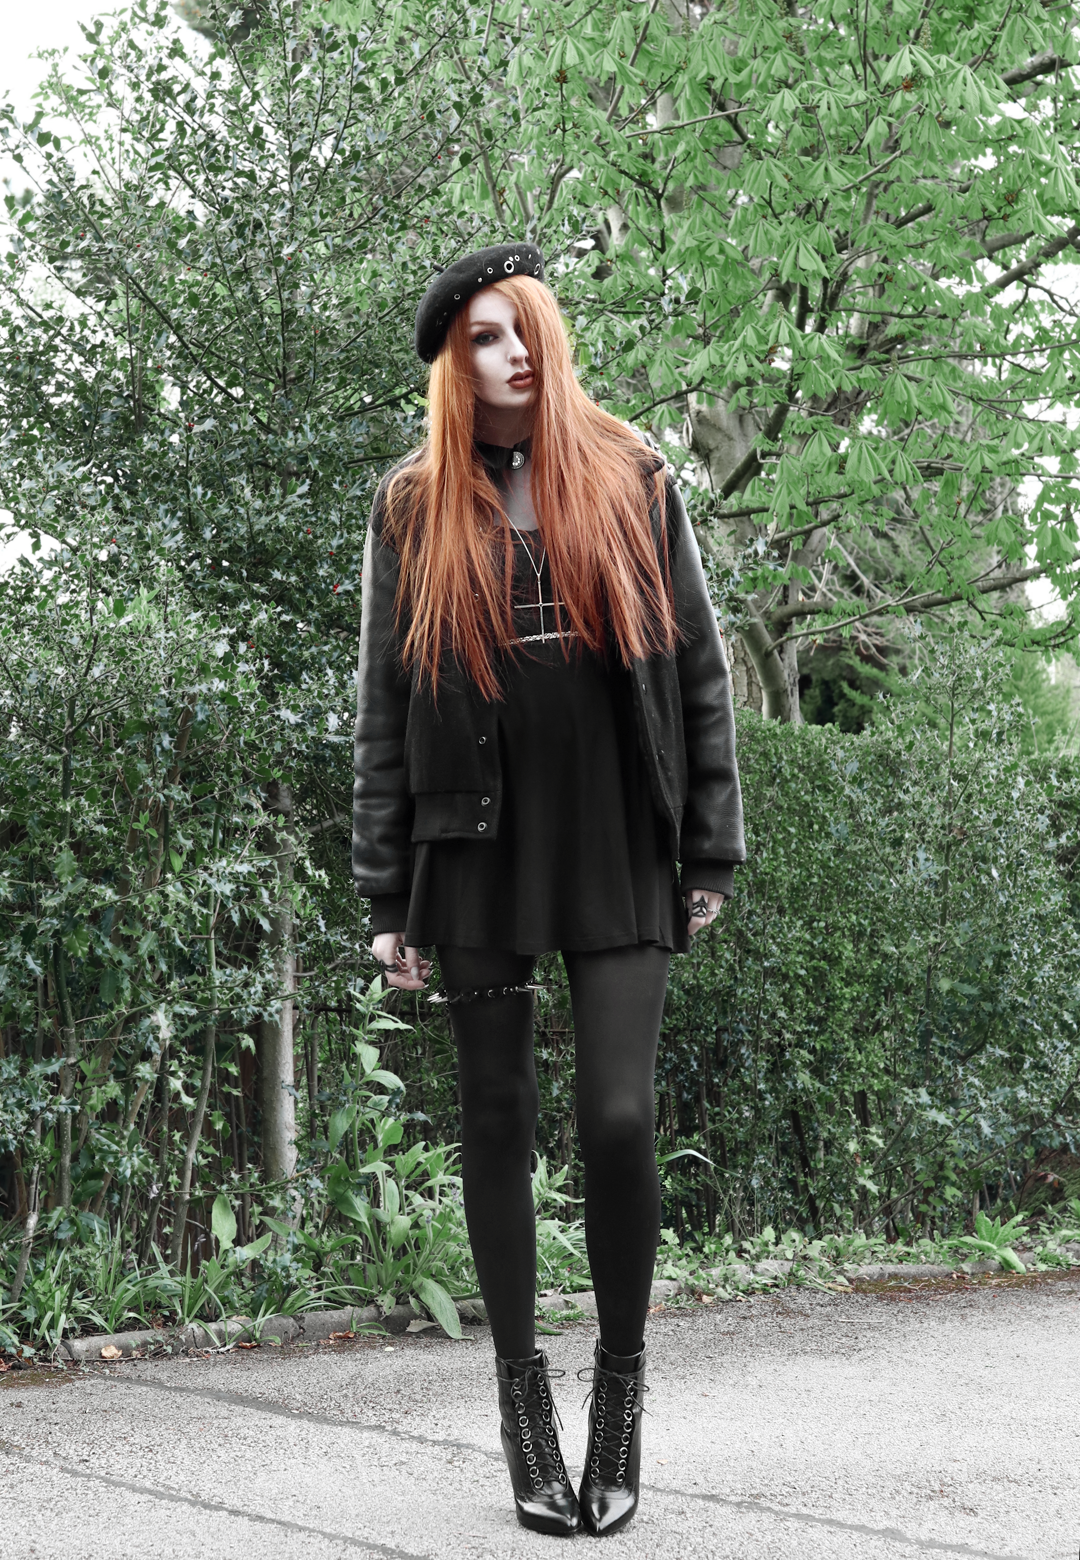 9 olivia emily asos eyelet beret, vintage varsity jacket, killstar dana dress, kiki minchin necklace, spiked garter, saint laurent slp ysl booties